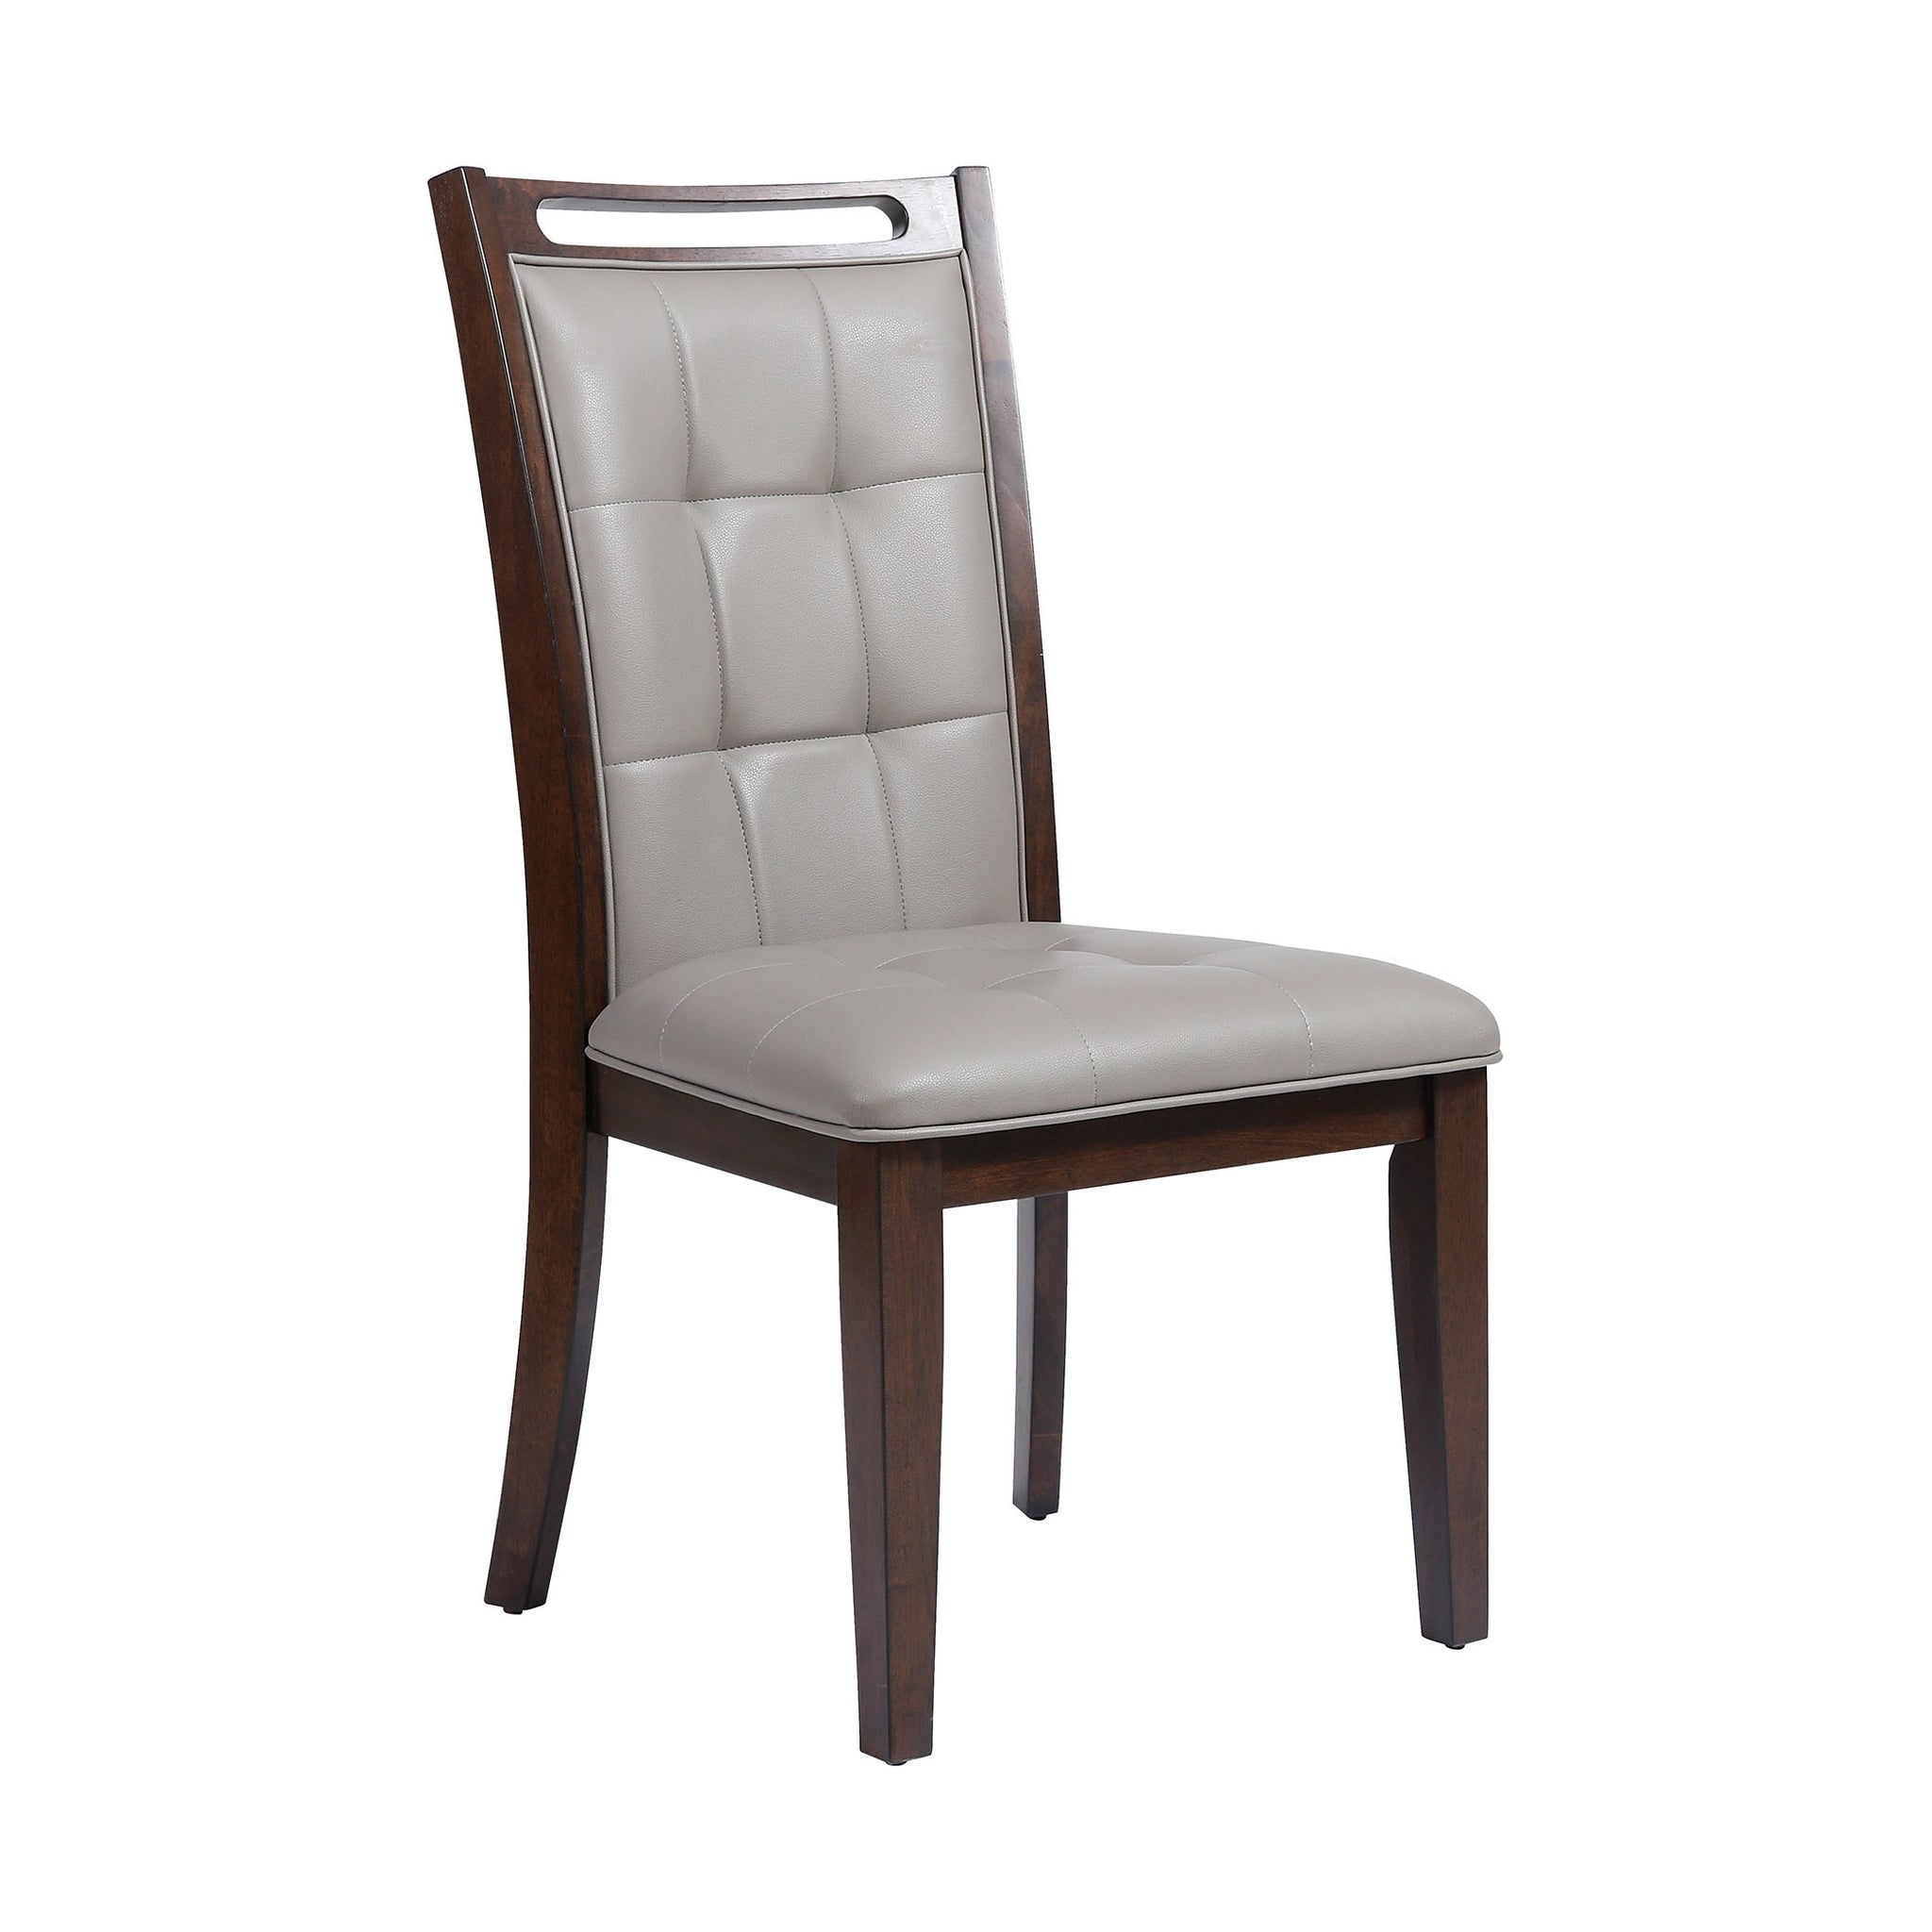 Lyman Grey Faux Leather Fabric. Rubber Wood in Arabica Finish Dining Chair